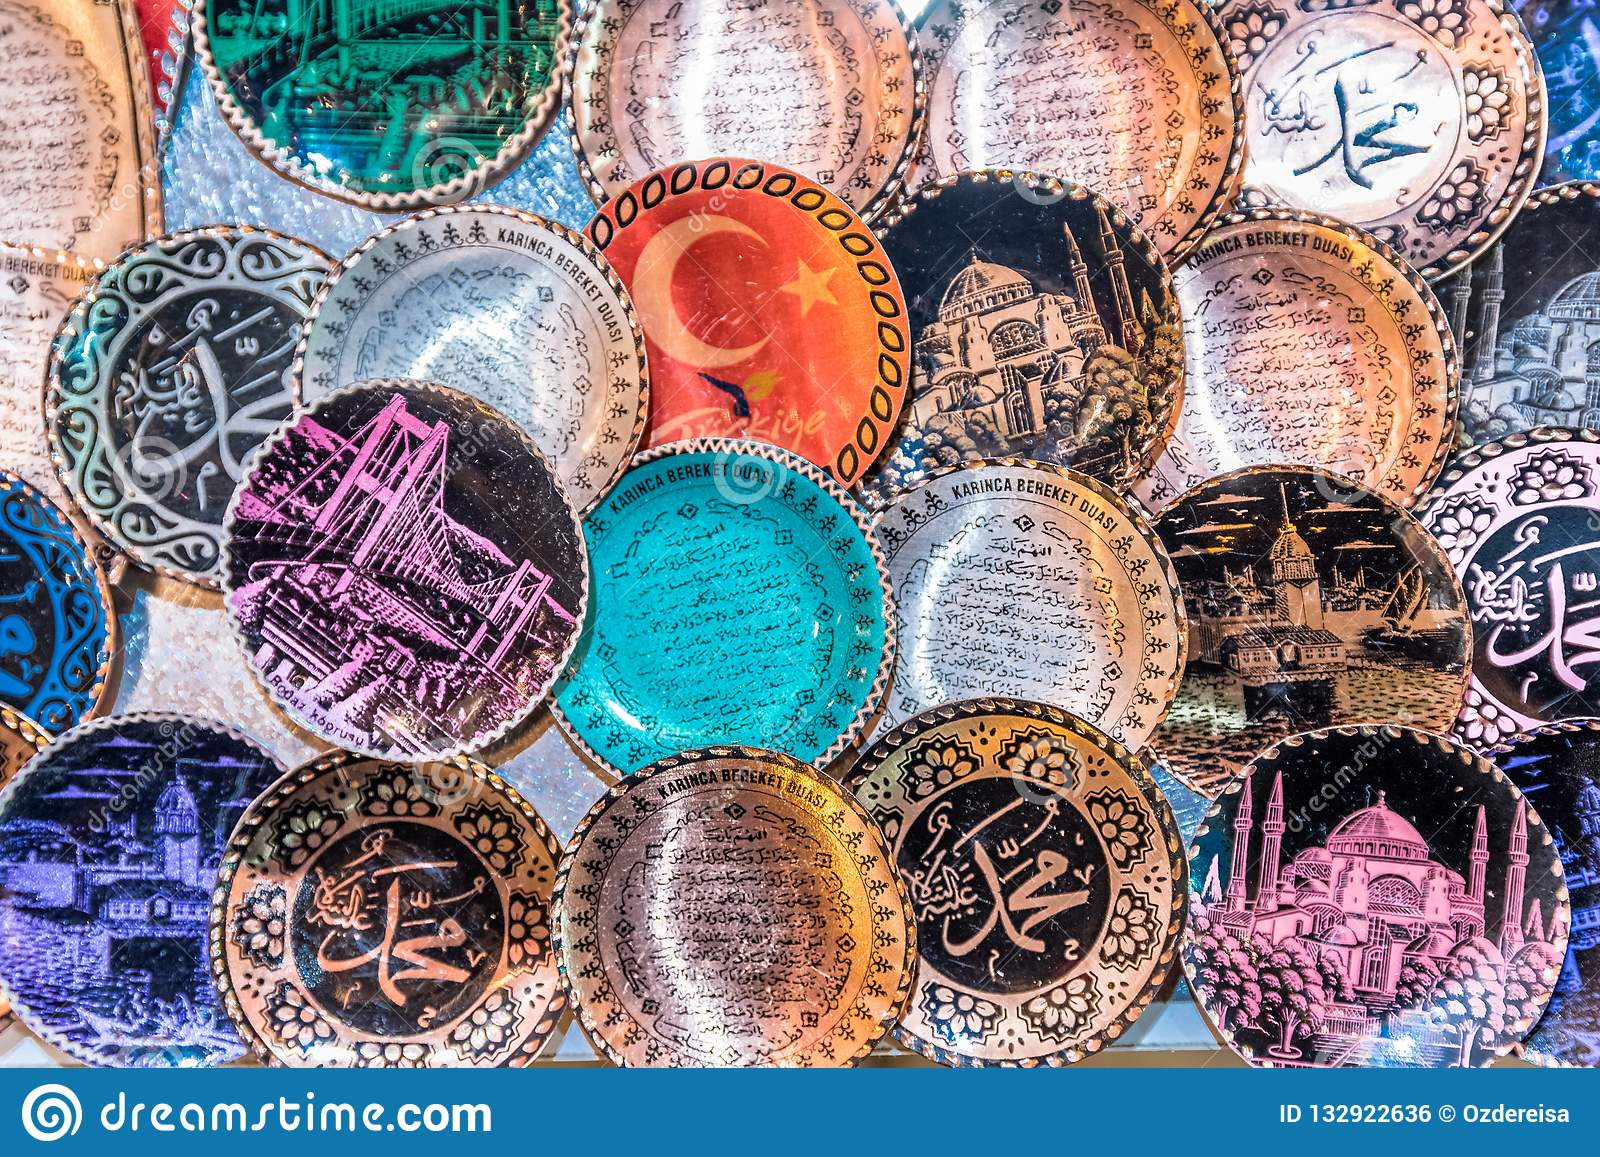 Traditional Turkish Ceramics On Sale At Grand Bazaar In Istanbul